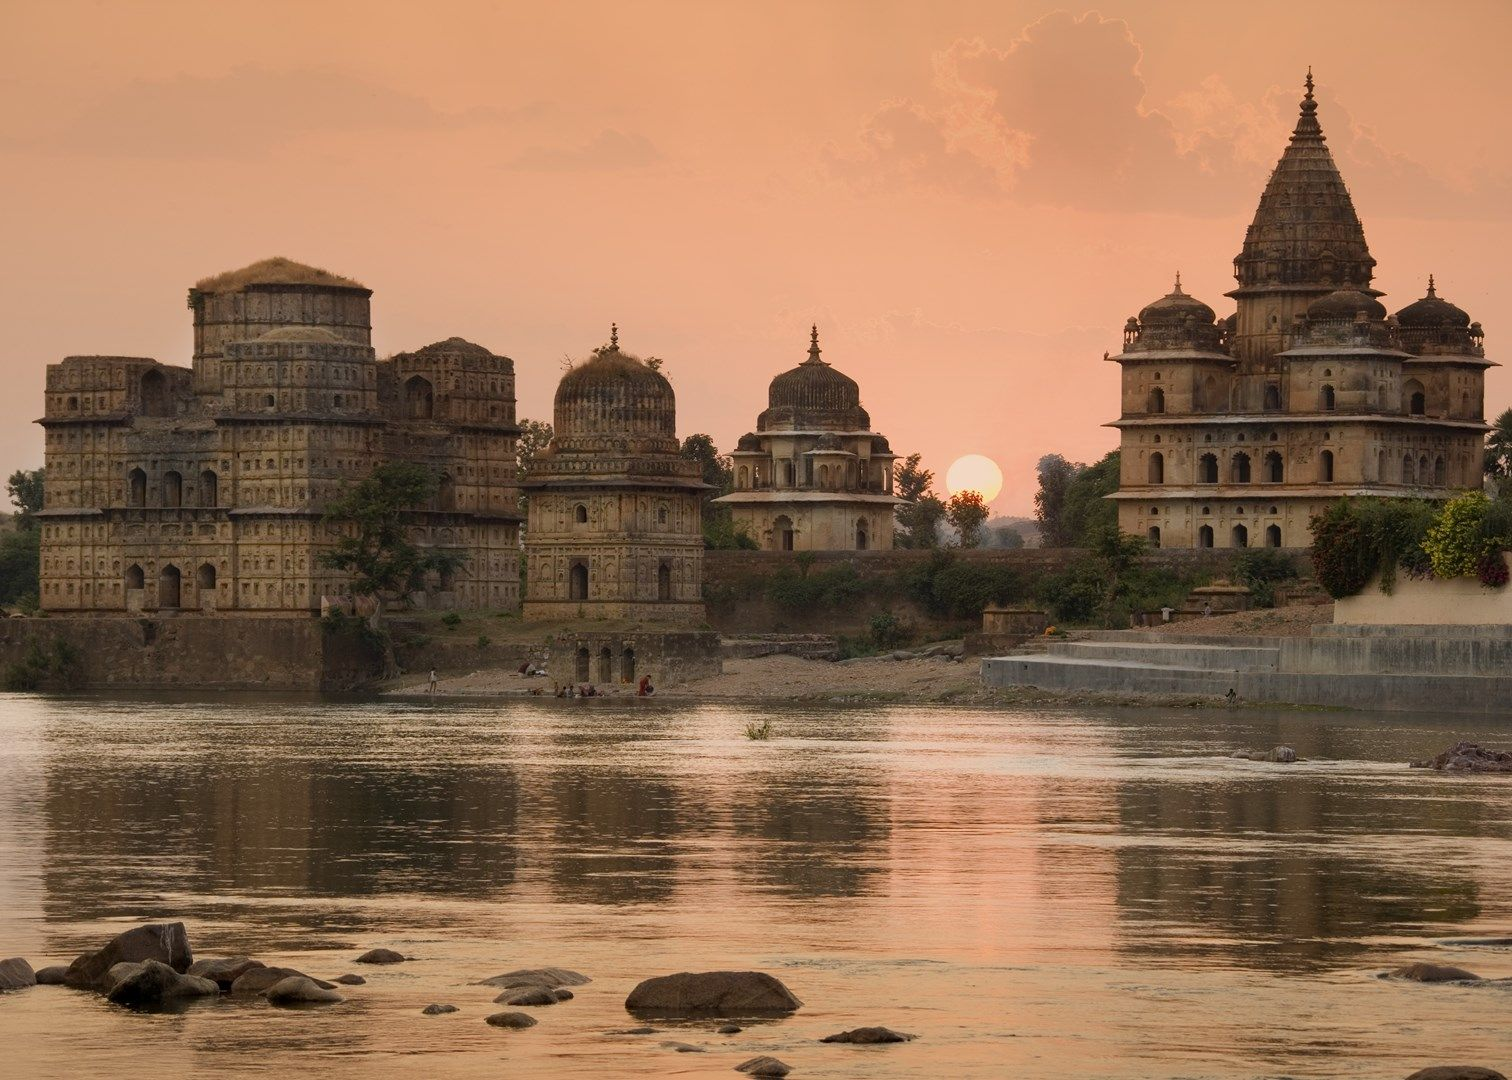 orchha-town-the-medieval-city-frozen-in-t-secret-world